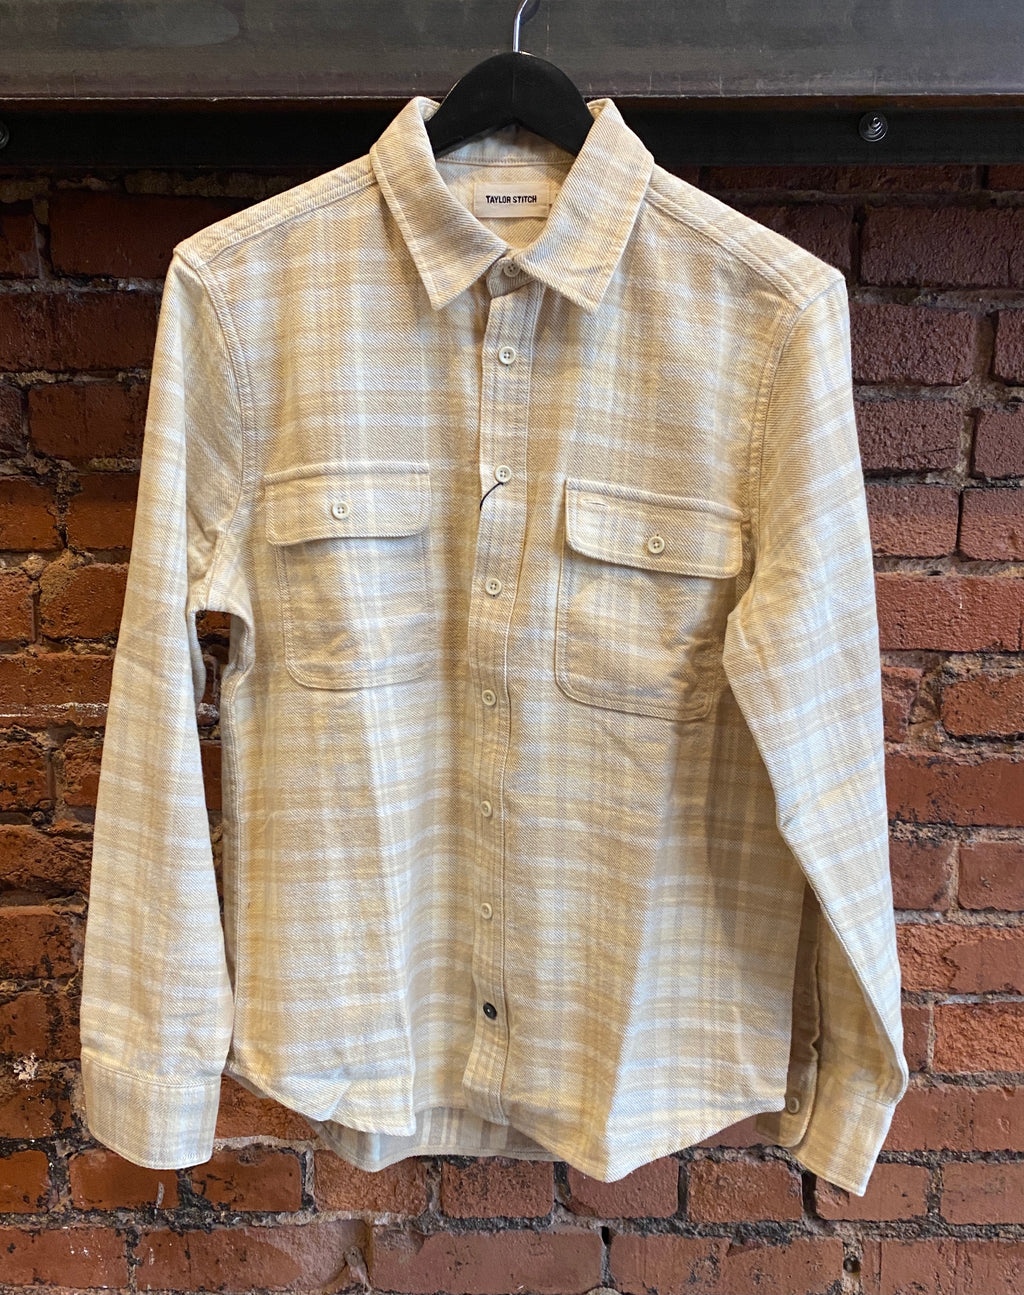 Taylor Stitch- The Ledge Shirt in Sand Plaid